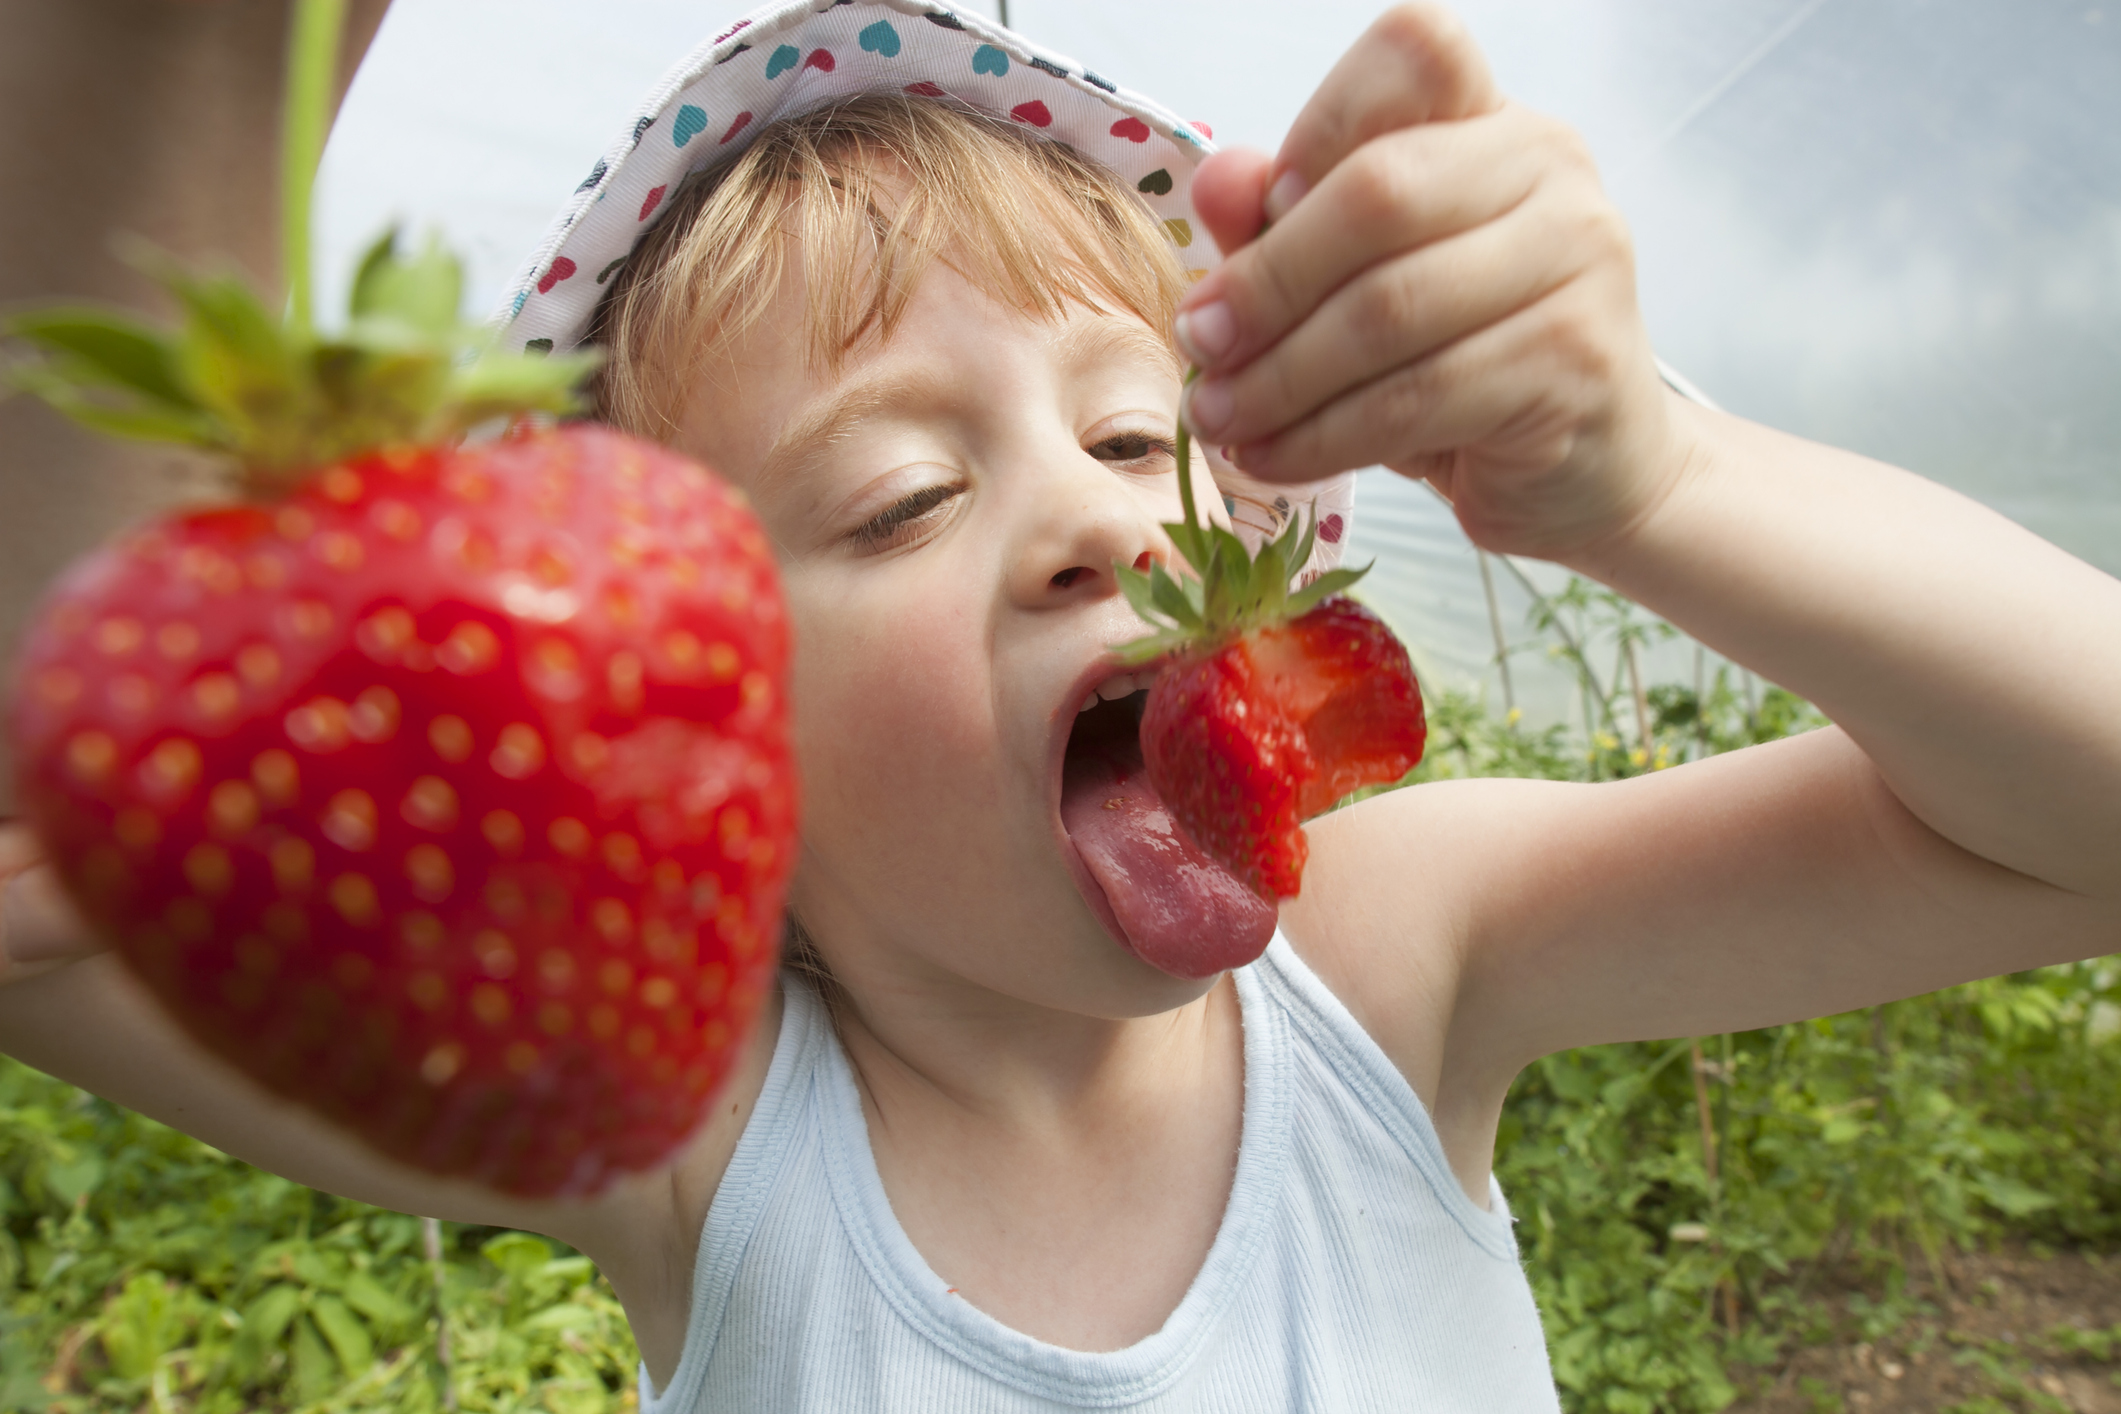 Young girl eating strawberries after picking them